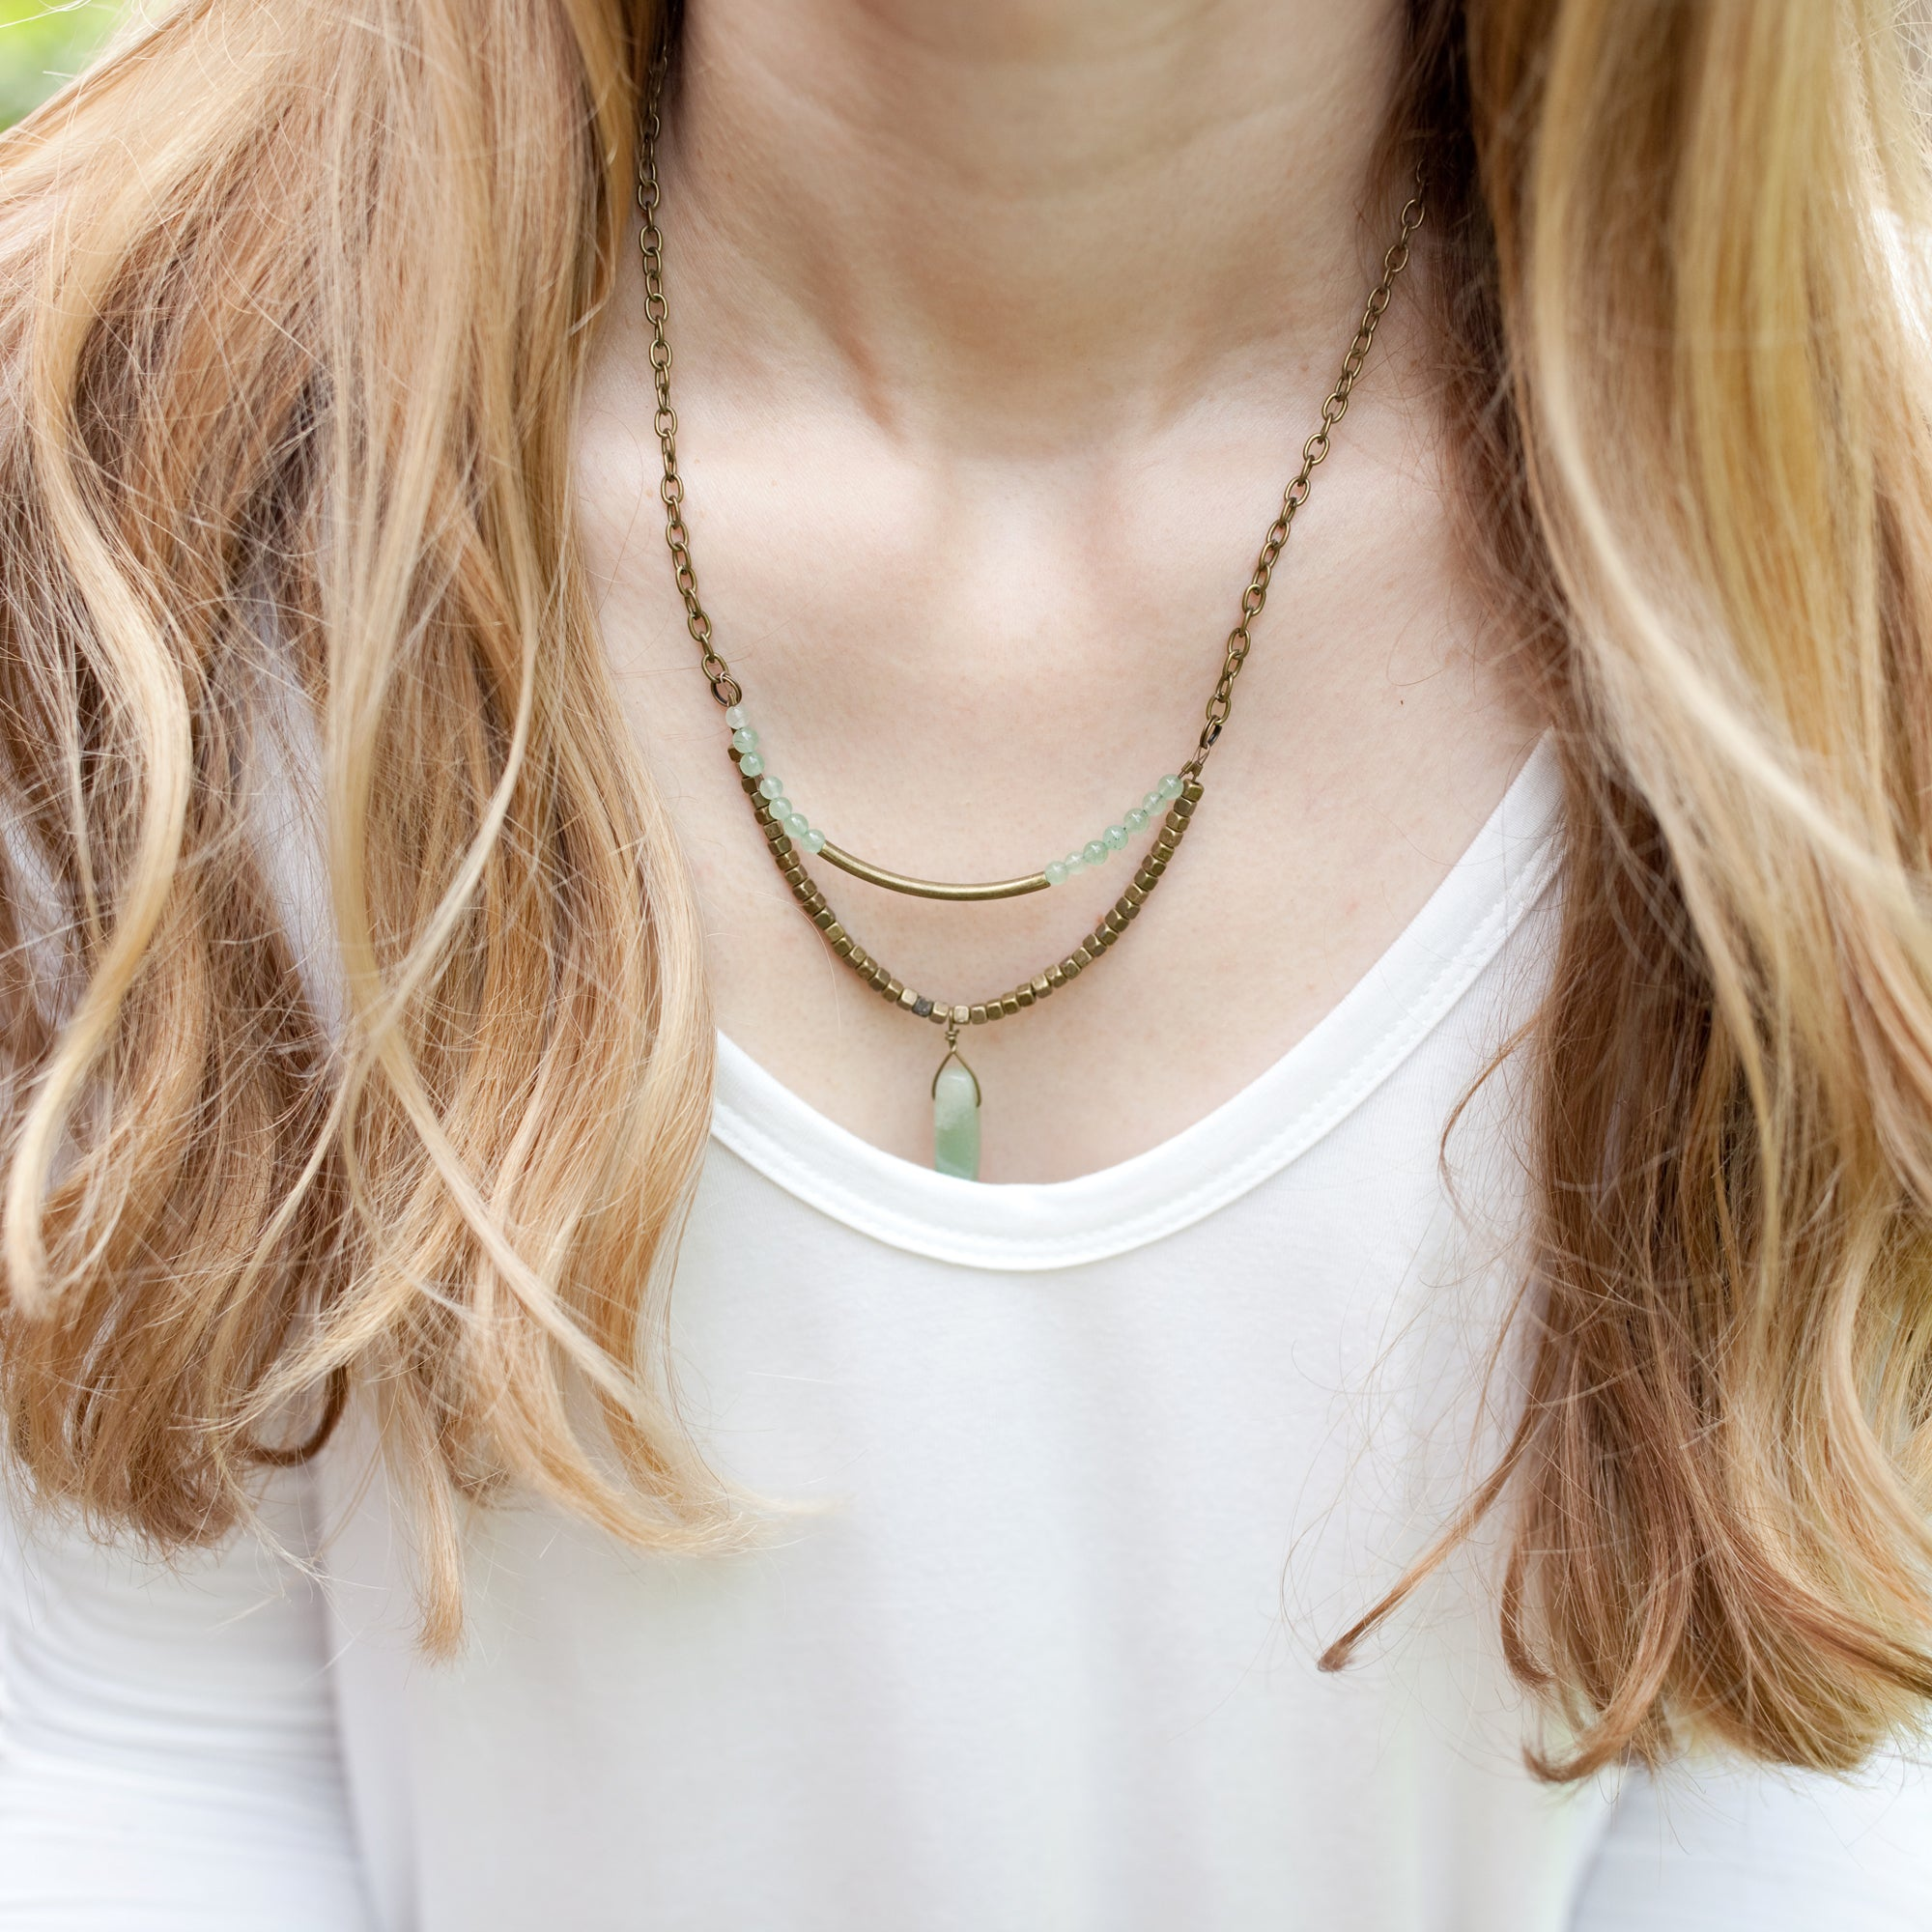 Mint and Antique Brass Layered Necklace - Newport Edge